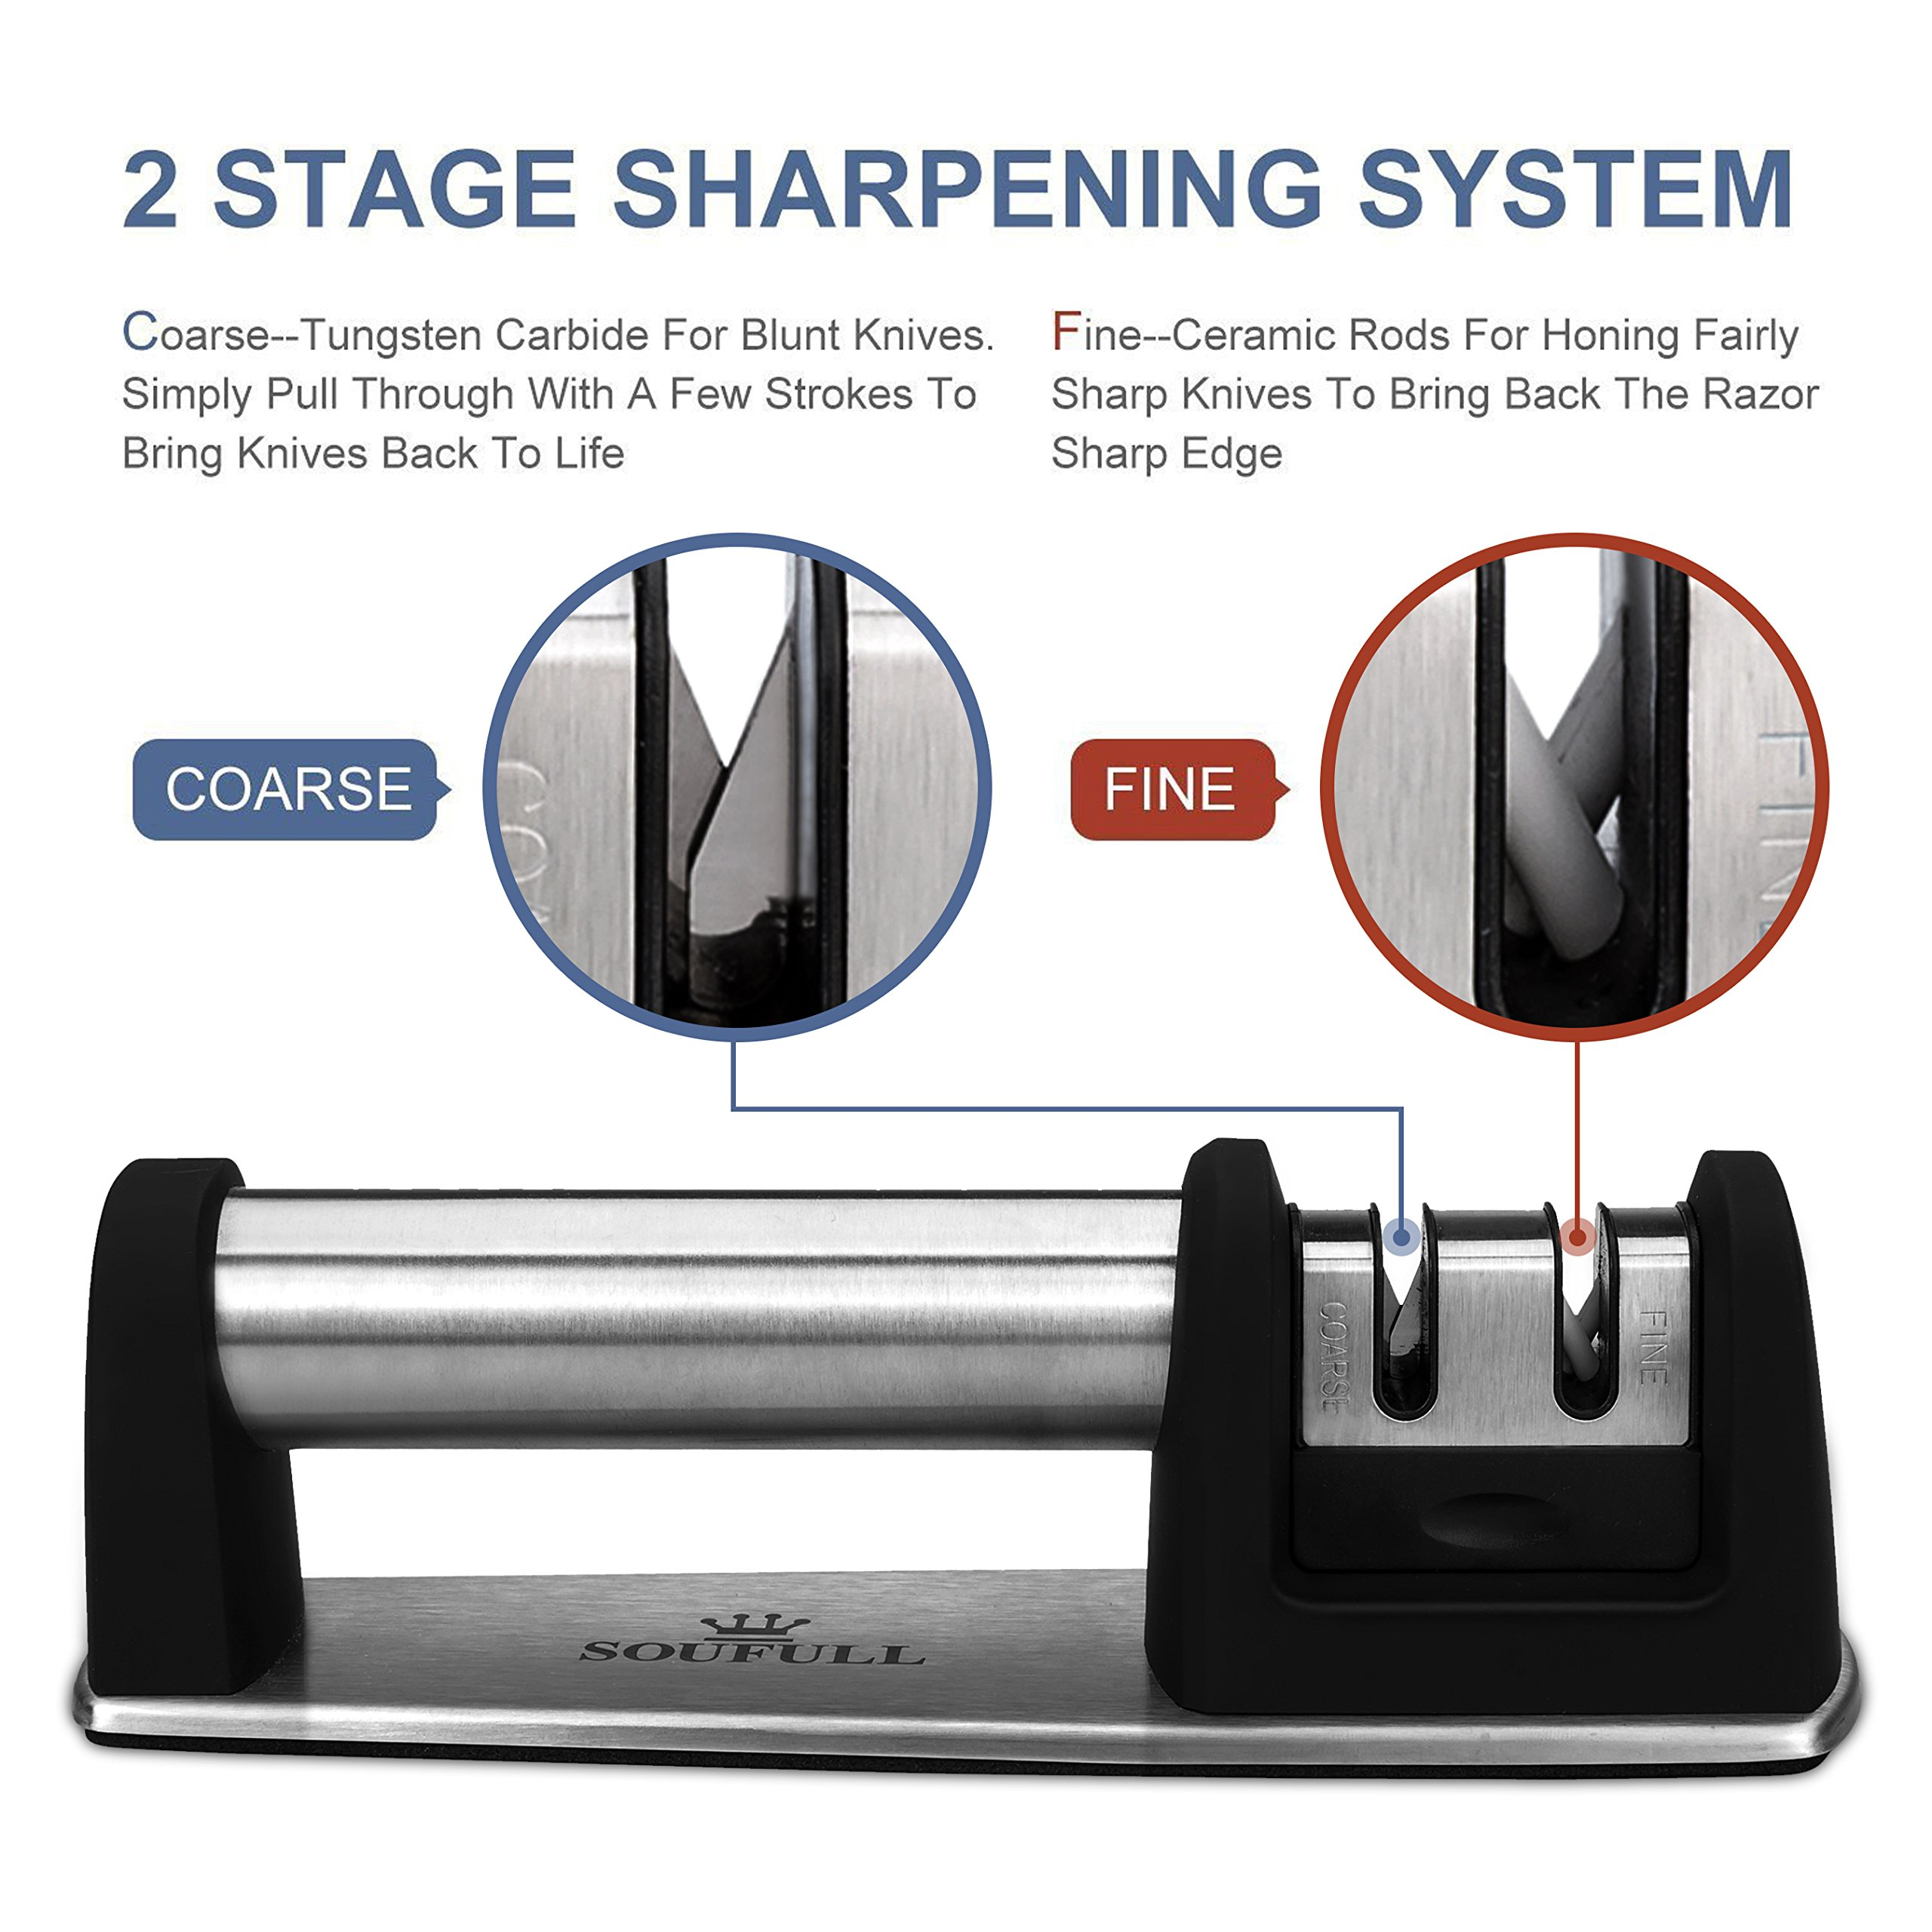 Professional Knife Sharpener- Soufull 2 Stage Diamond Coated Sharpening with Ceramic Rod - Non-slip Base Sharpening Knife Easy to Control -Knife Sharpening by Soufull (Image #4)